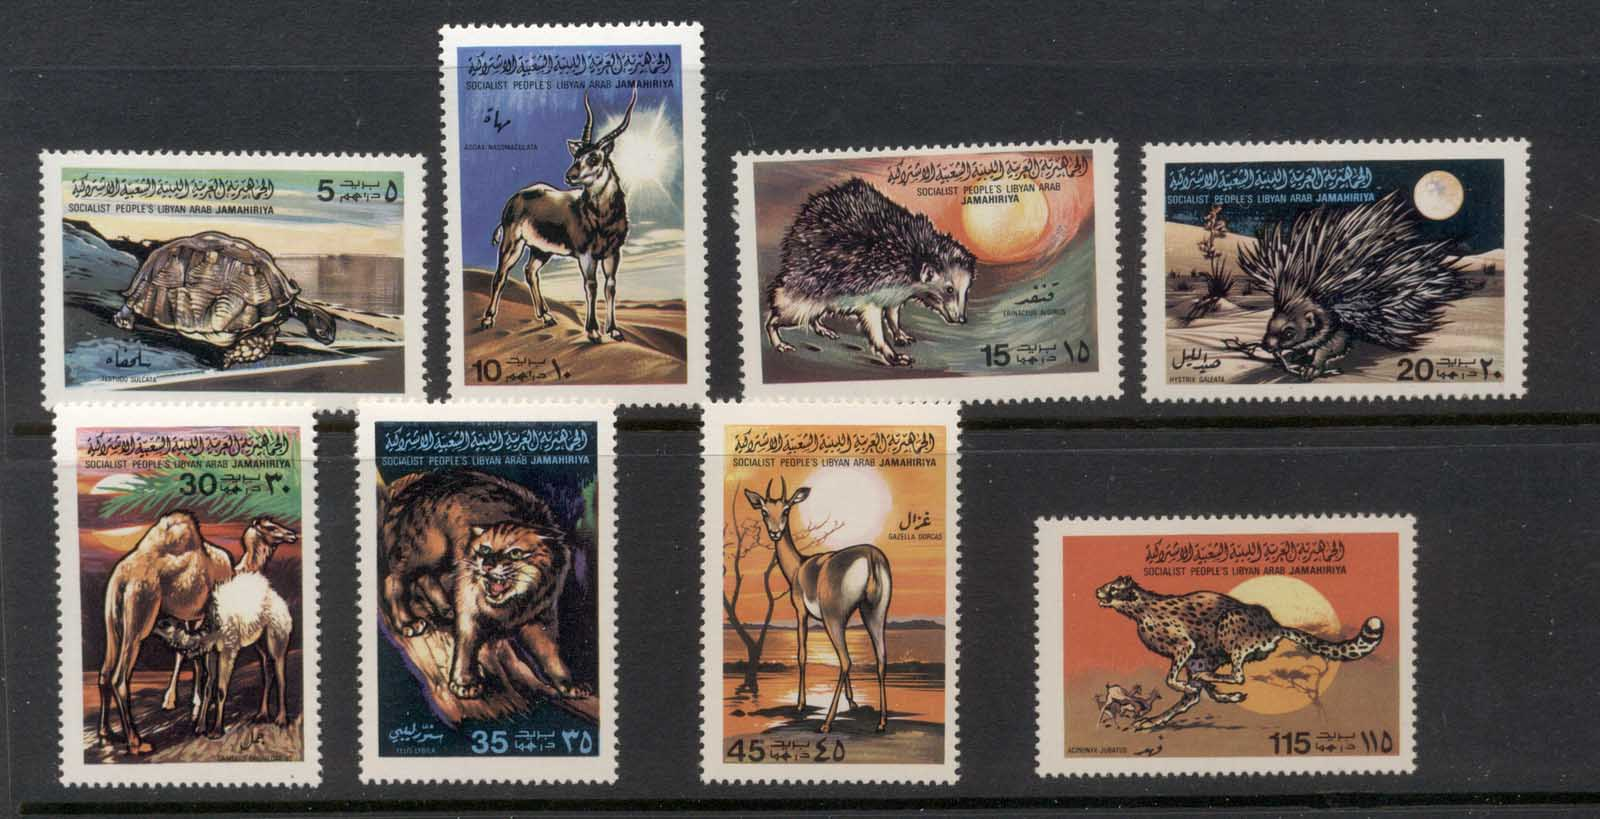 Libya 1979 Animals, Wildlife MUH